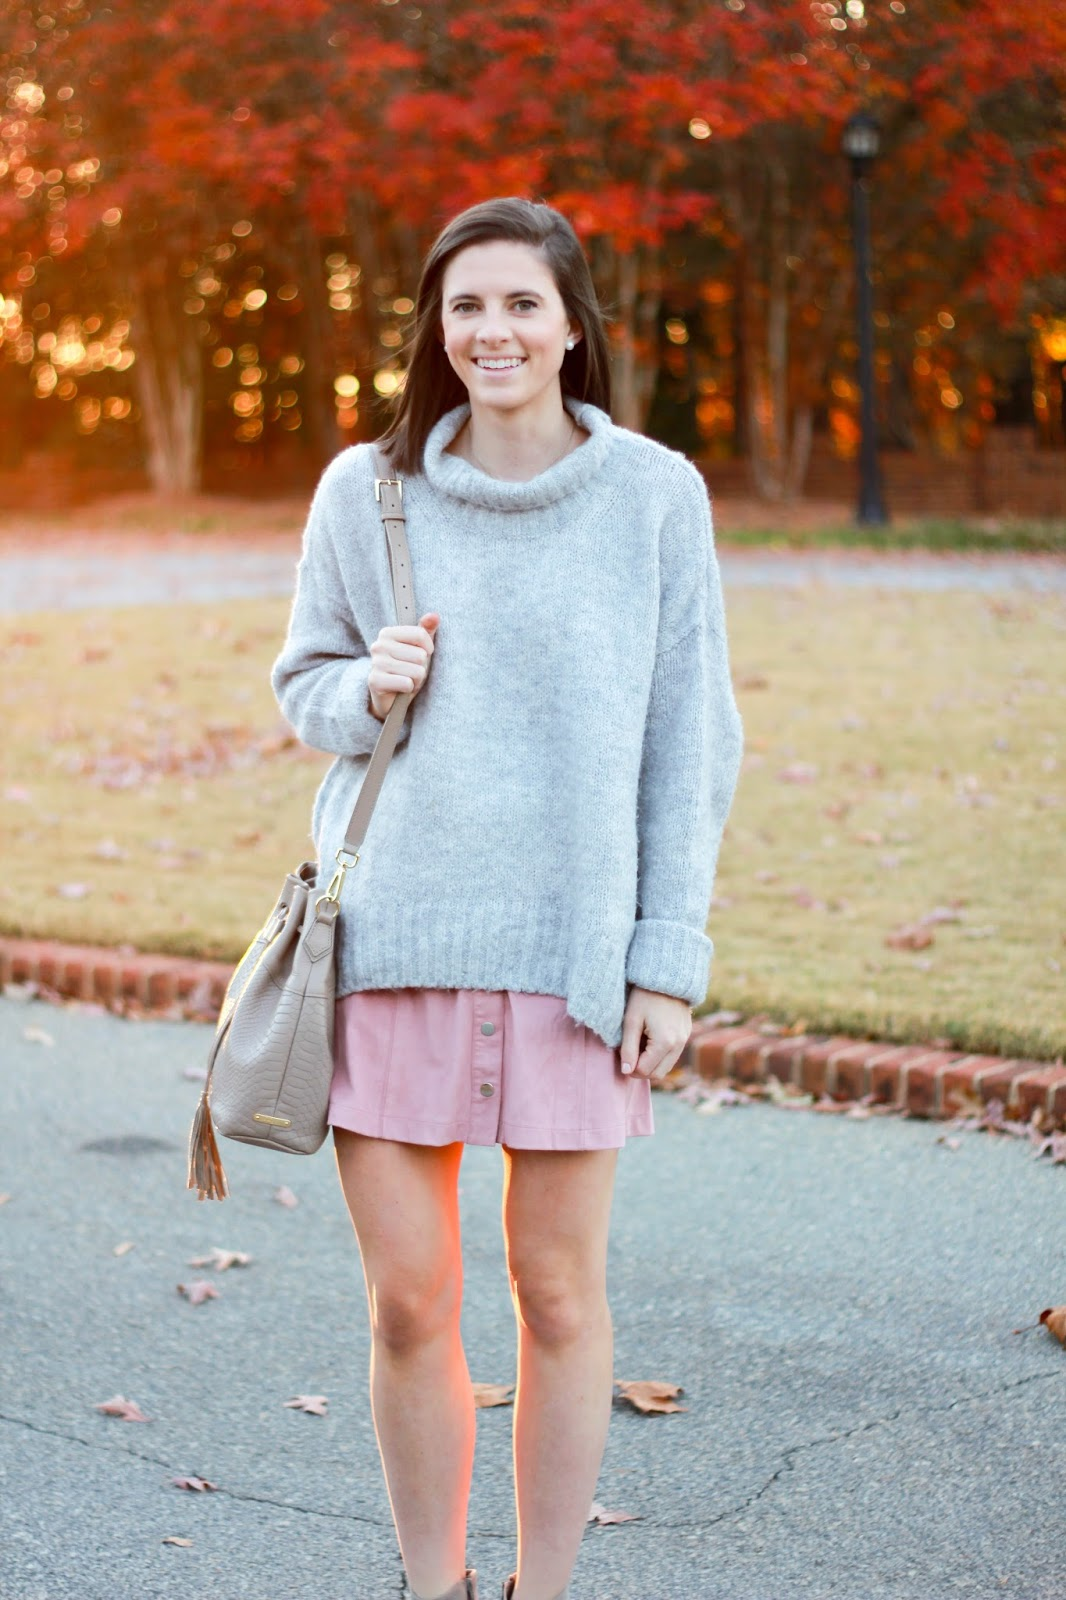 Prep In Your Step Suede Skirts \u0026 Chunky Sweaters